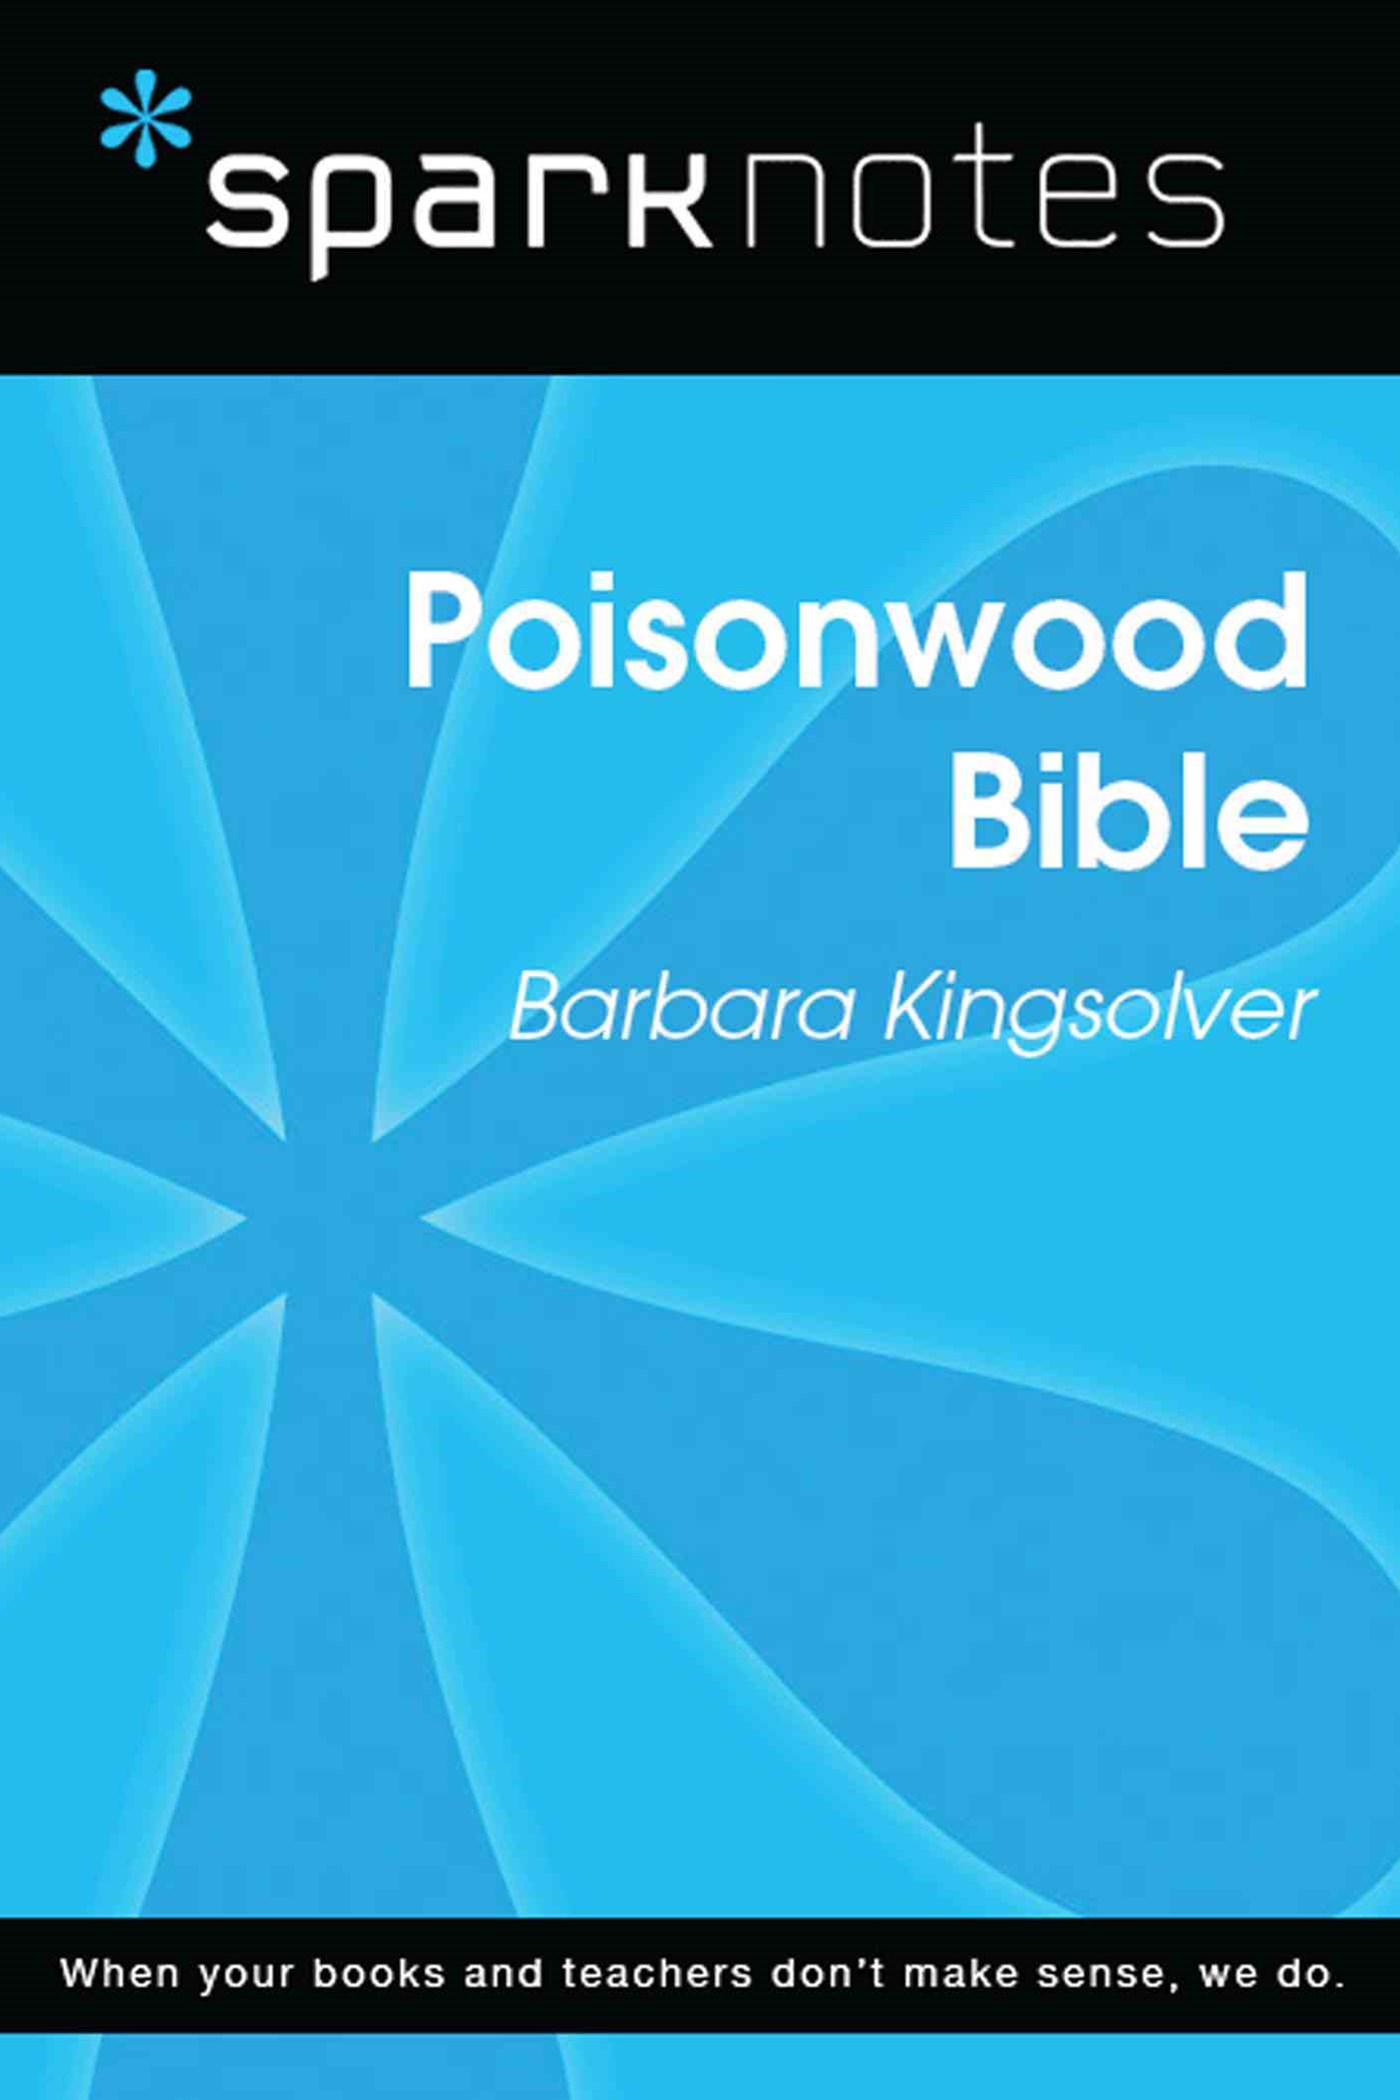 (ebook) The Poisonwood Bible (SparkNotes Literature Guide)